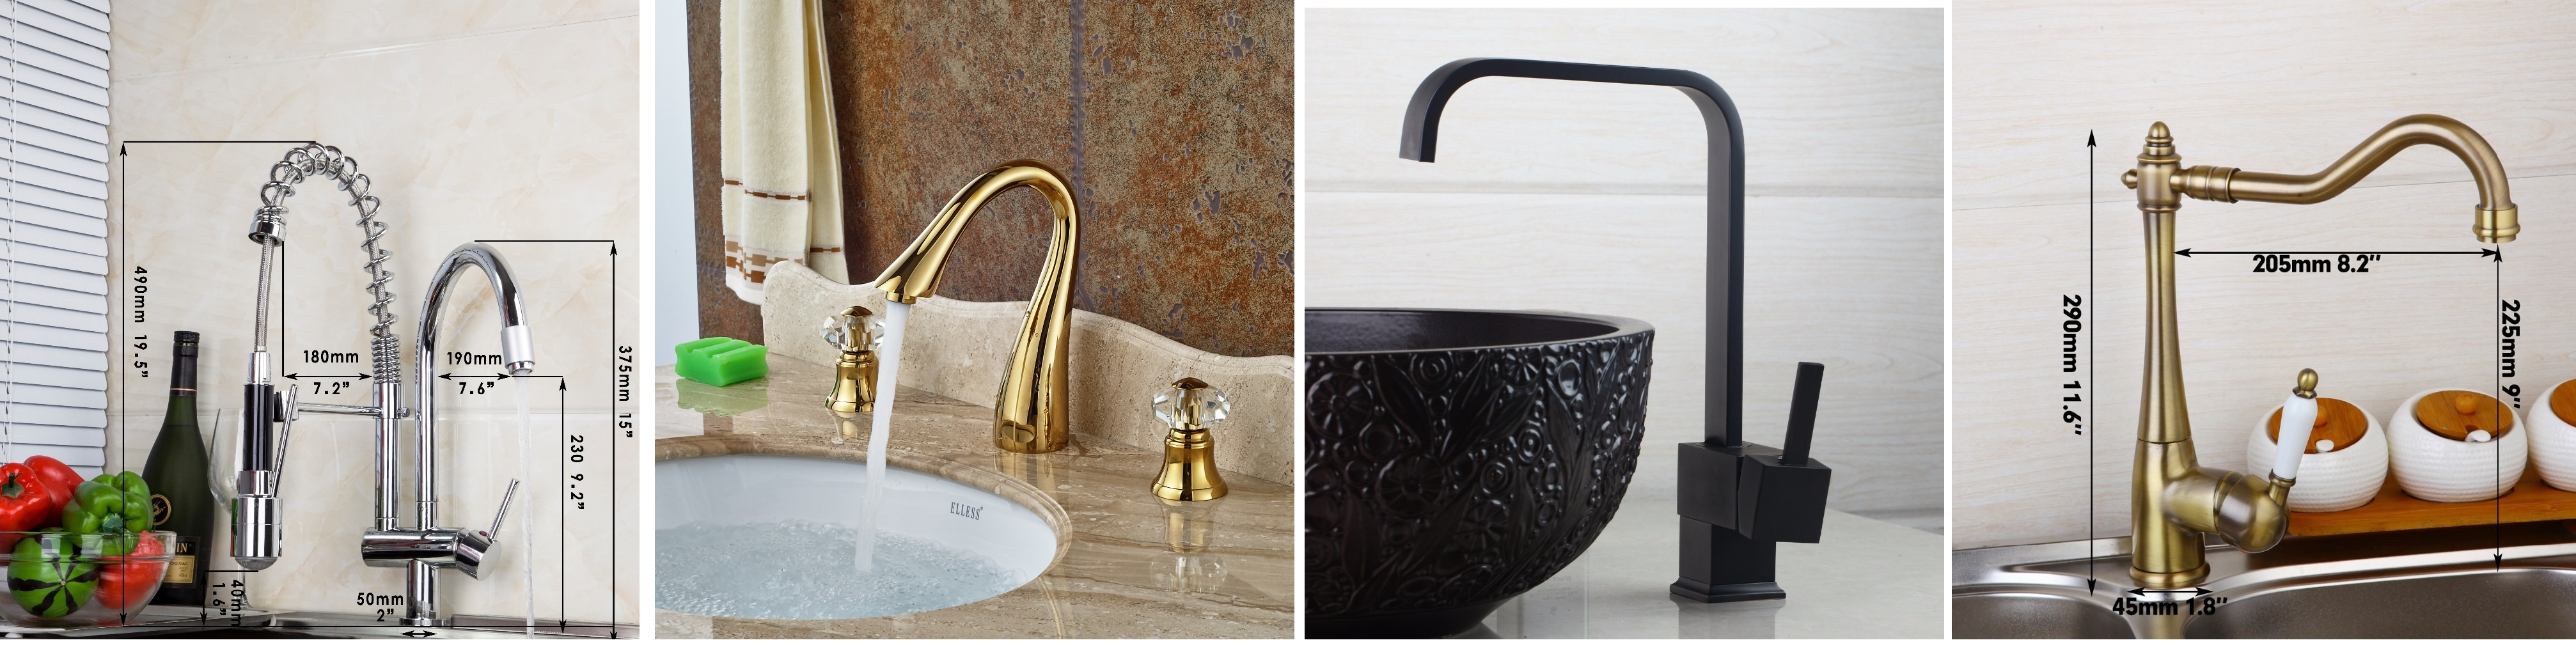 Bath Fixtures Give A Pocket Friendly Update To Your Bathroom Fixtures